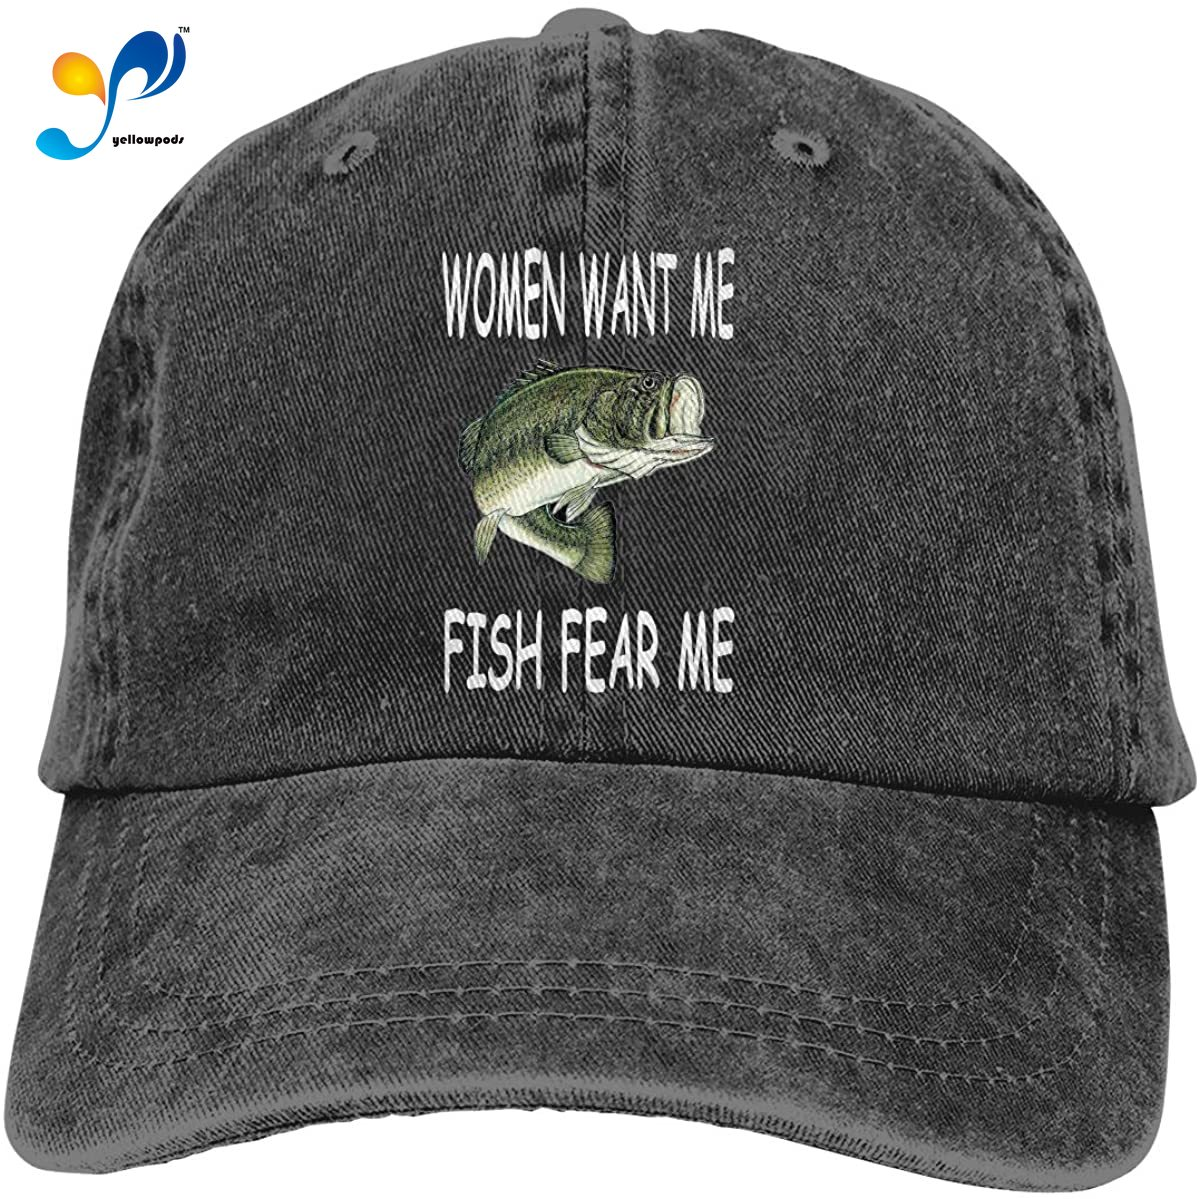 Women Want Me Fish Fear Me Men's Baseball Hats Trucker Dicer